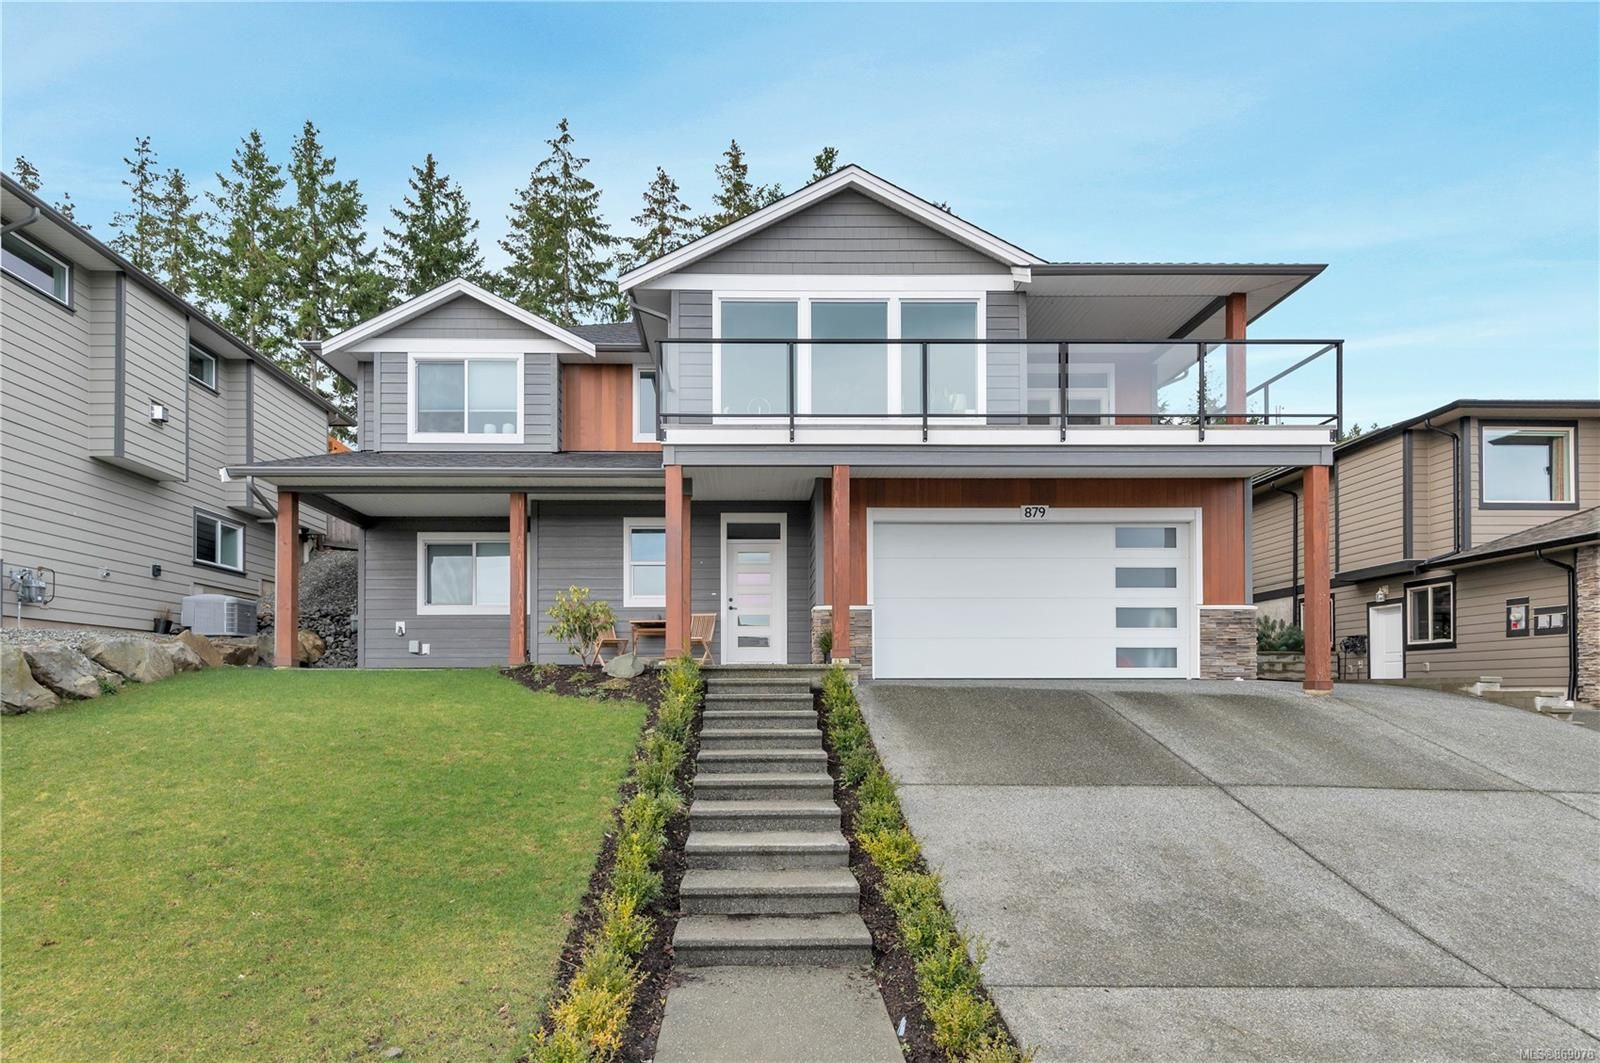 Main Photo: 879 Timberline Dr in : CR Campbell River Central House for sale (Campbell River)  : MLS®# 869078